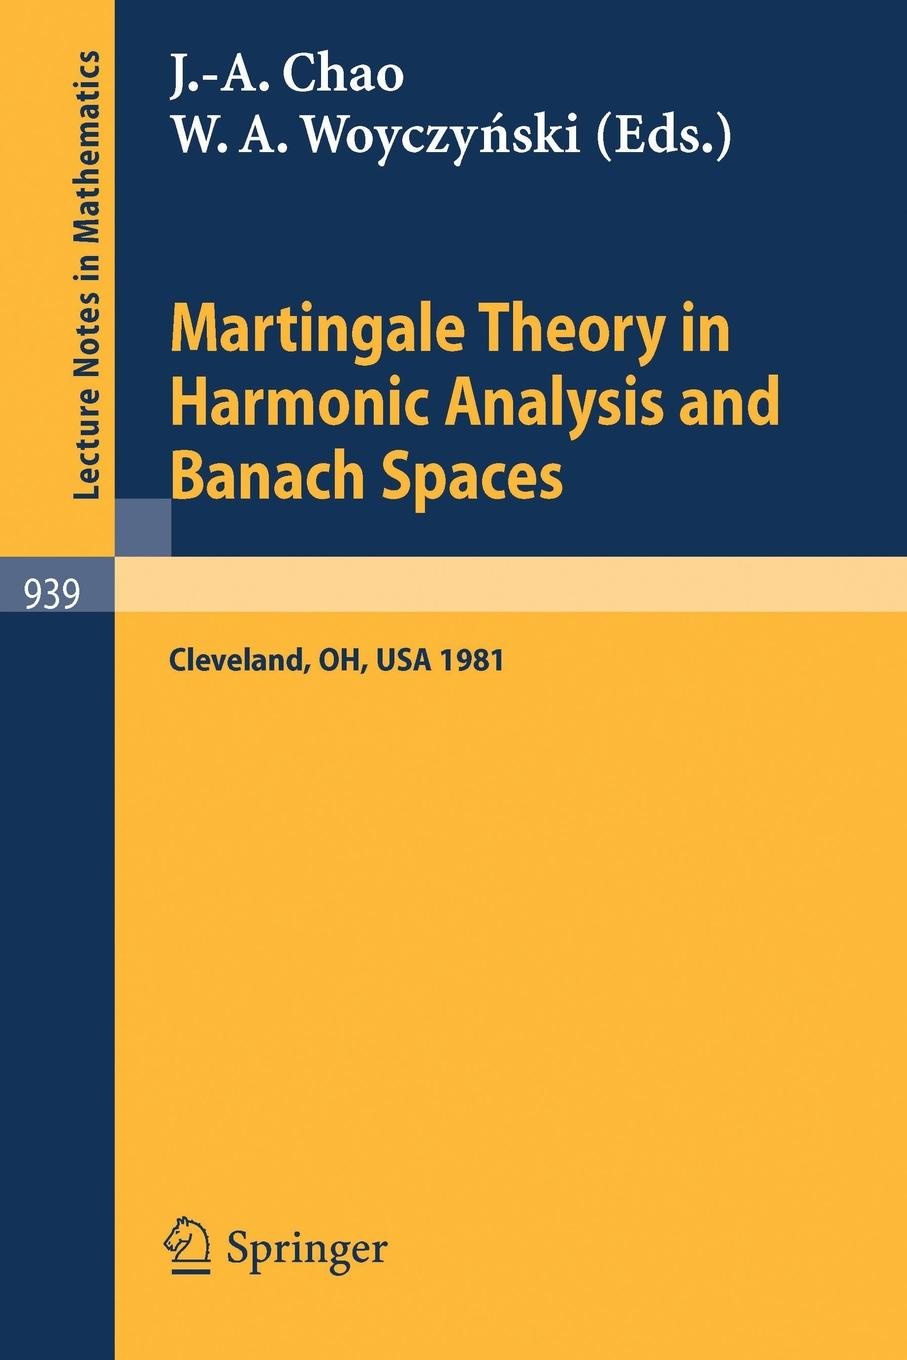 Martingale Theory in Harmonic Analysis and Banach Spaces. Proceedings of the Nsf-Cbms Conference Held at the Cleveland State University, Cleveland, Oh цена